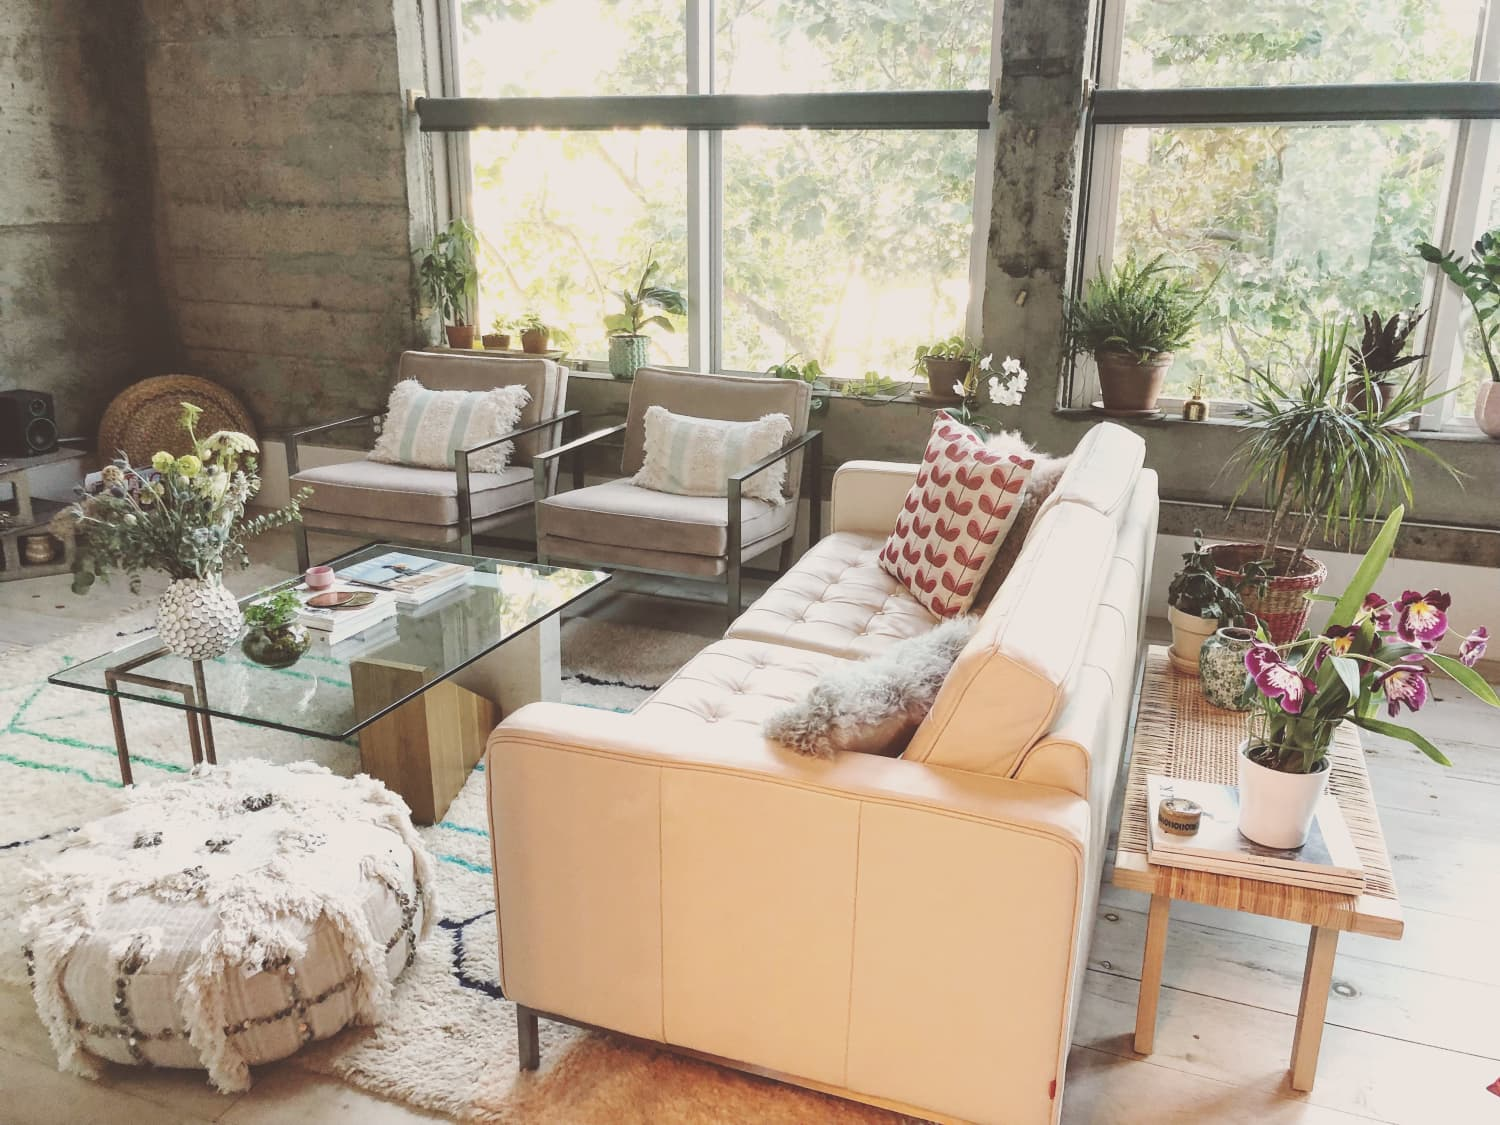 A Condo Found on Craigslist Is a Uniquely Magical, Bright Dream Rental | Apartment Therapy